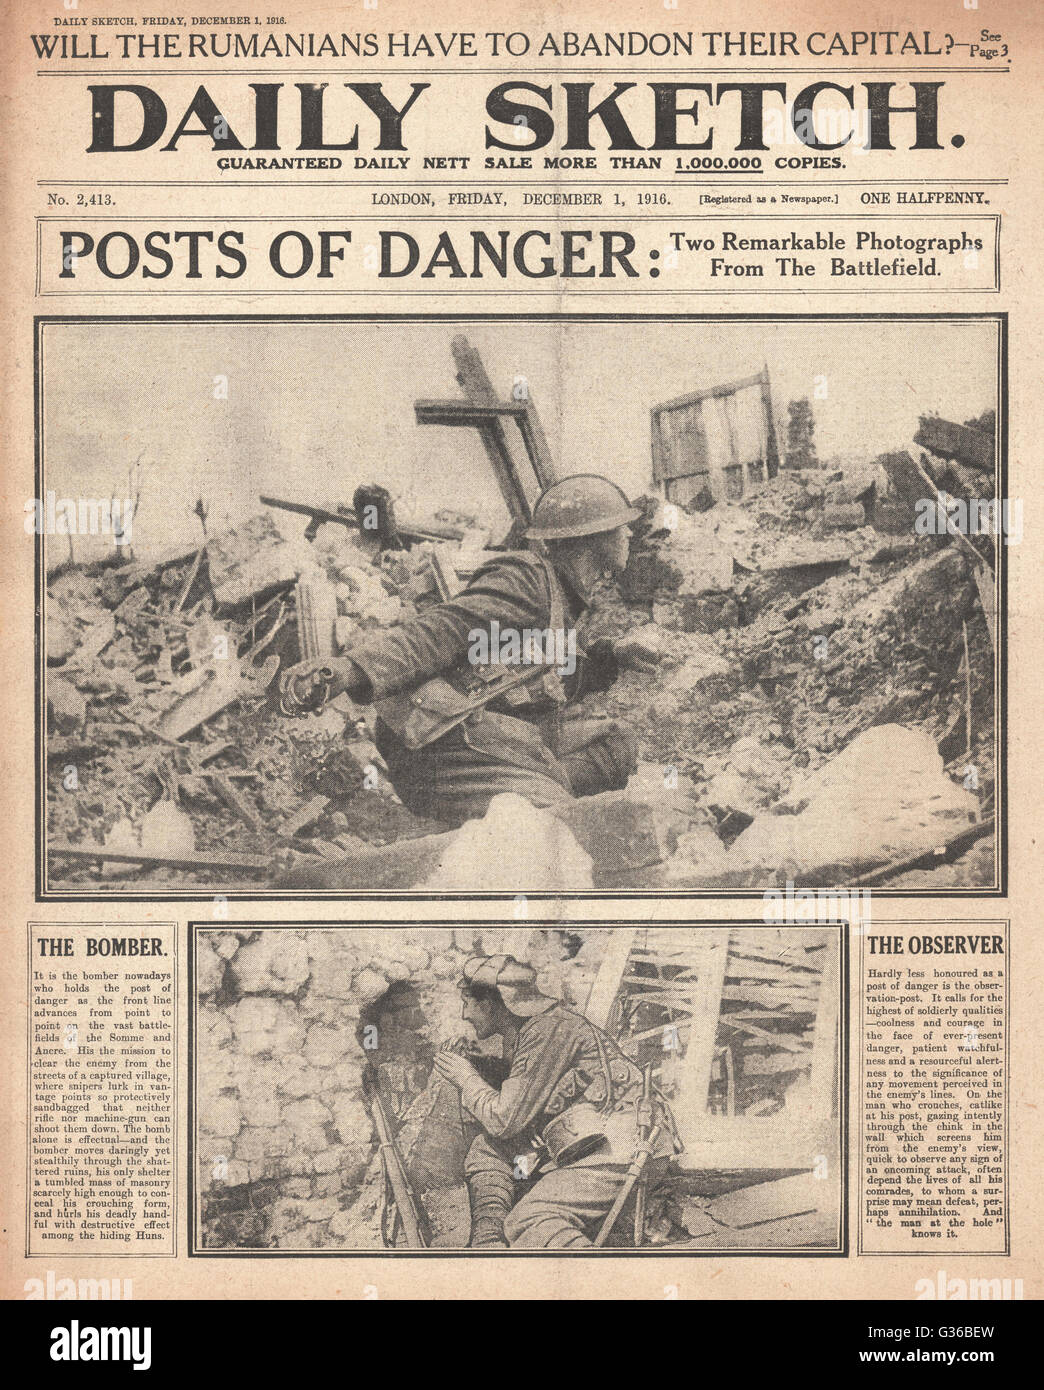 1916 Daily Sketch front page Action photos from the battlefront - Stock Image